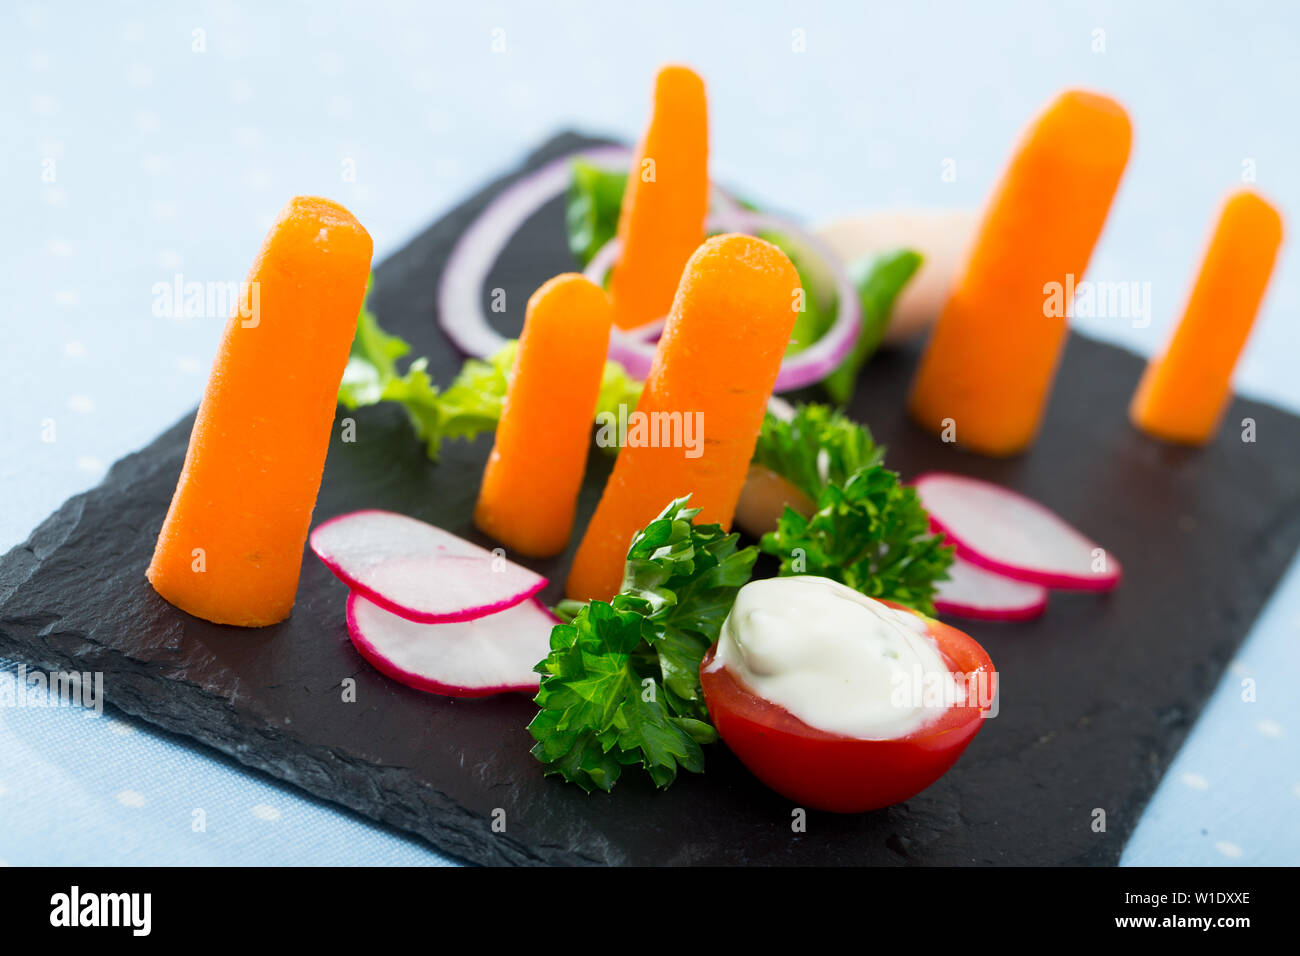 Vegetarian lunch - raw vegetables and greens on black plate - Stock Image